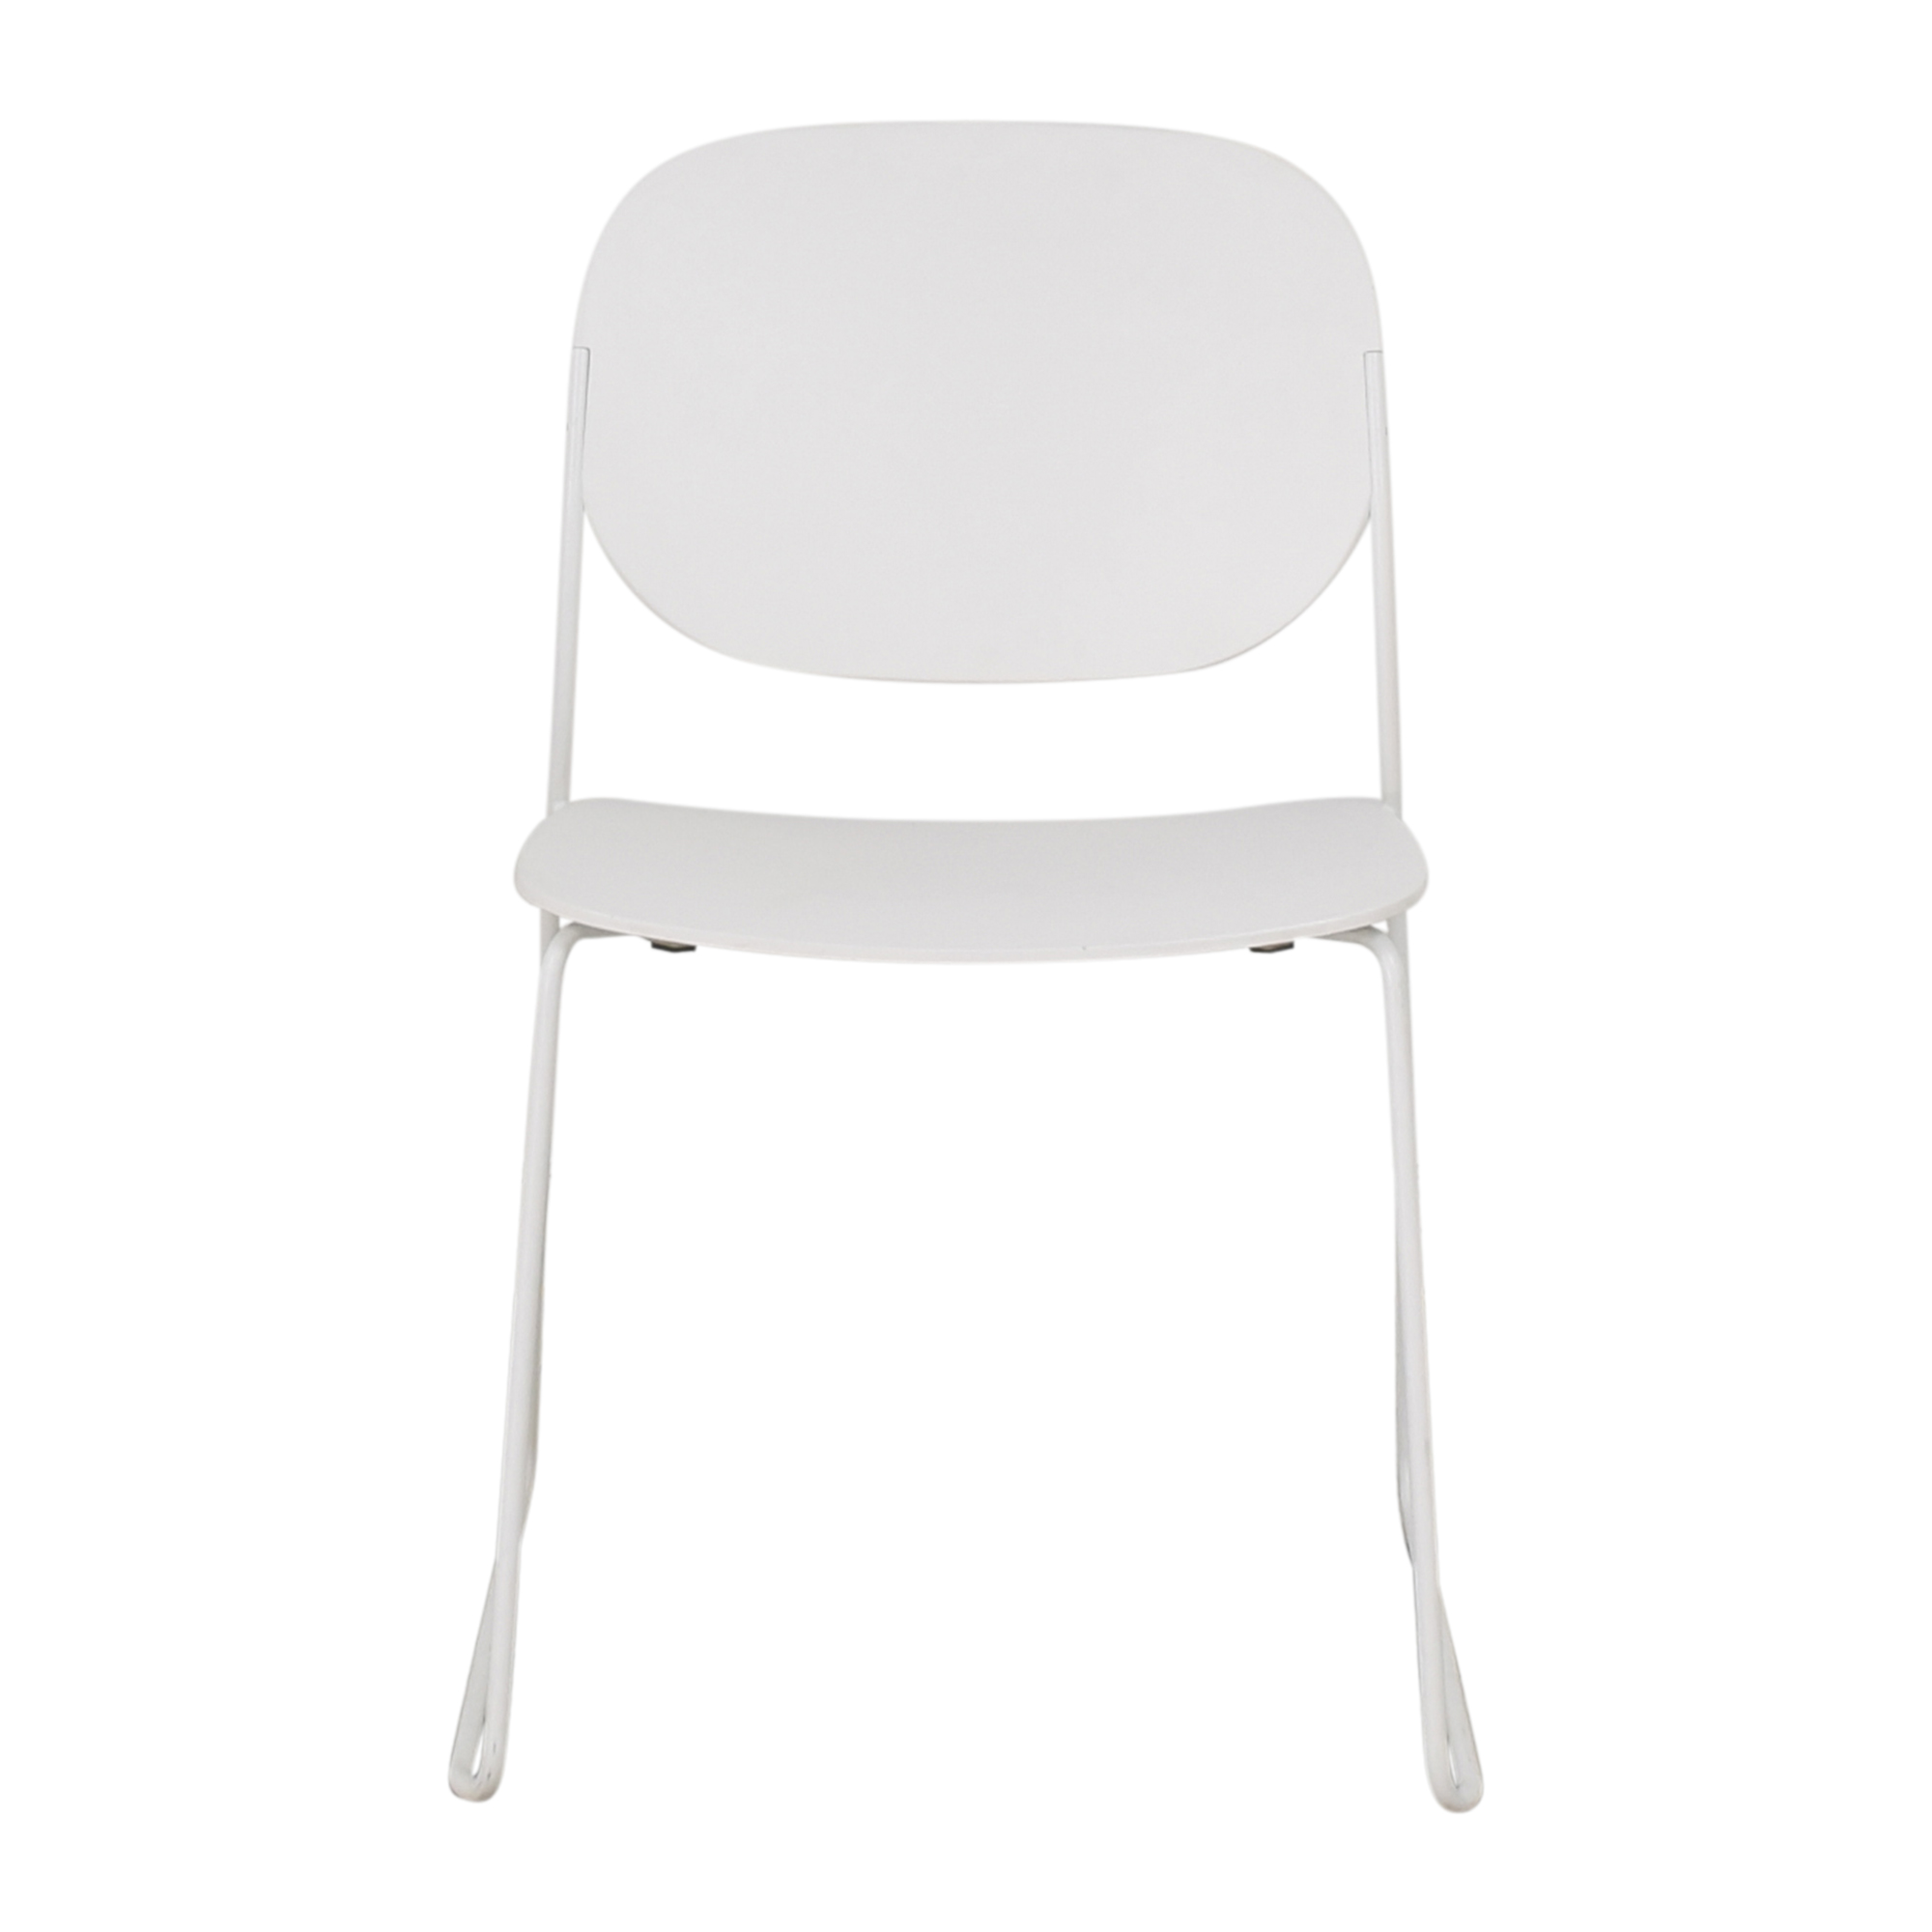 buy Lapalma Olo Dining Chair Lapalma Chairs